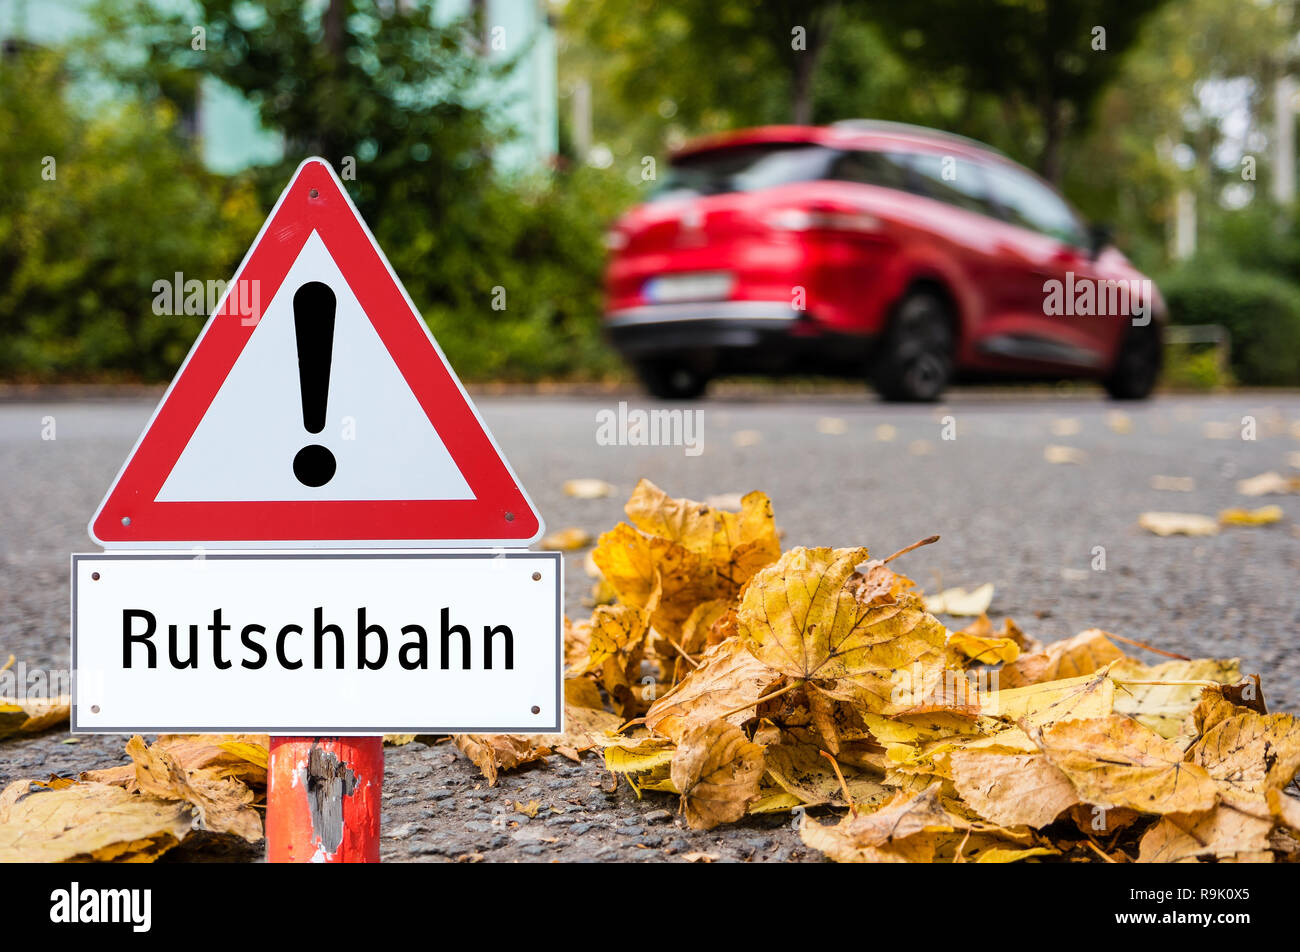 Caution slide sign - Stock Image